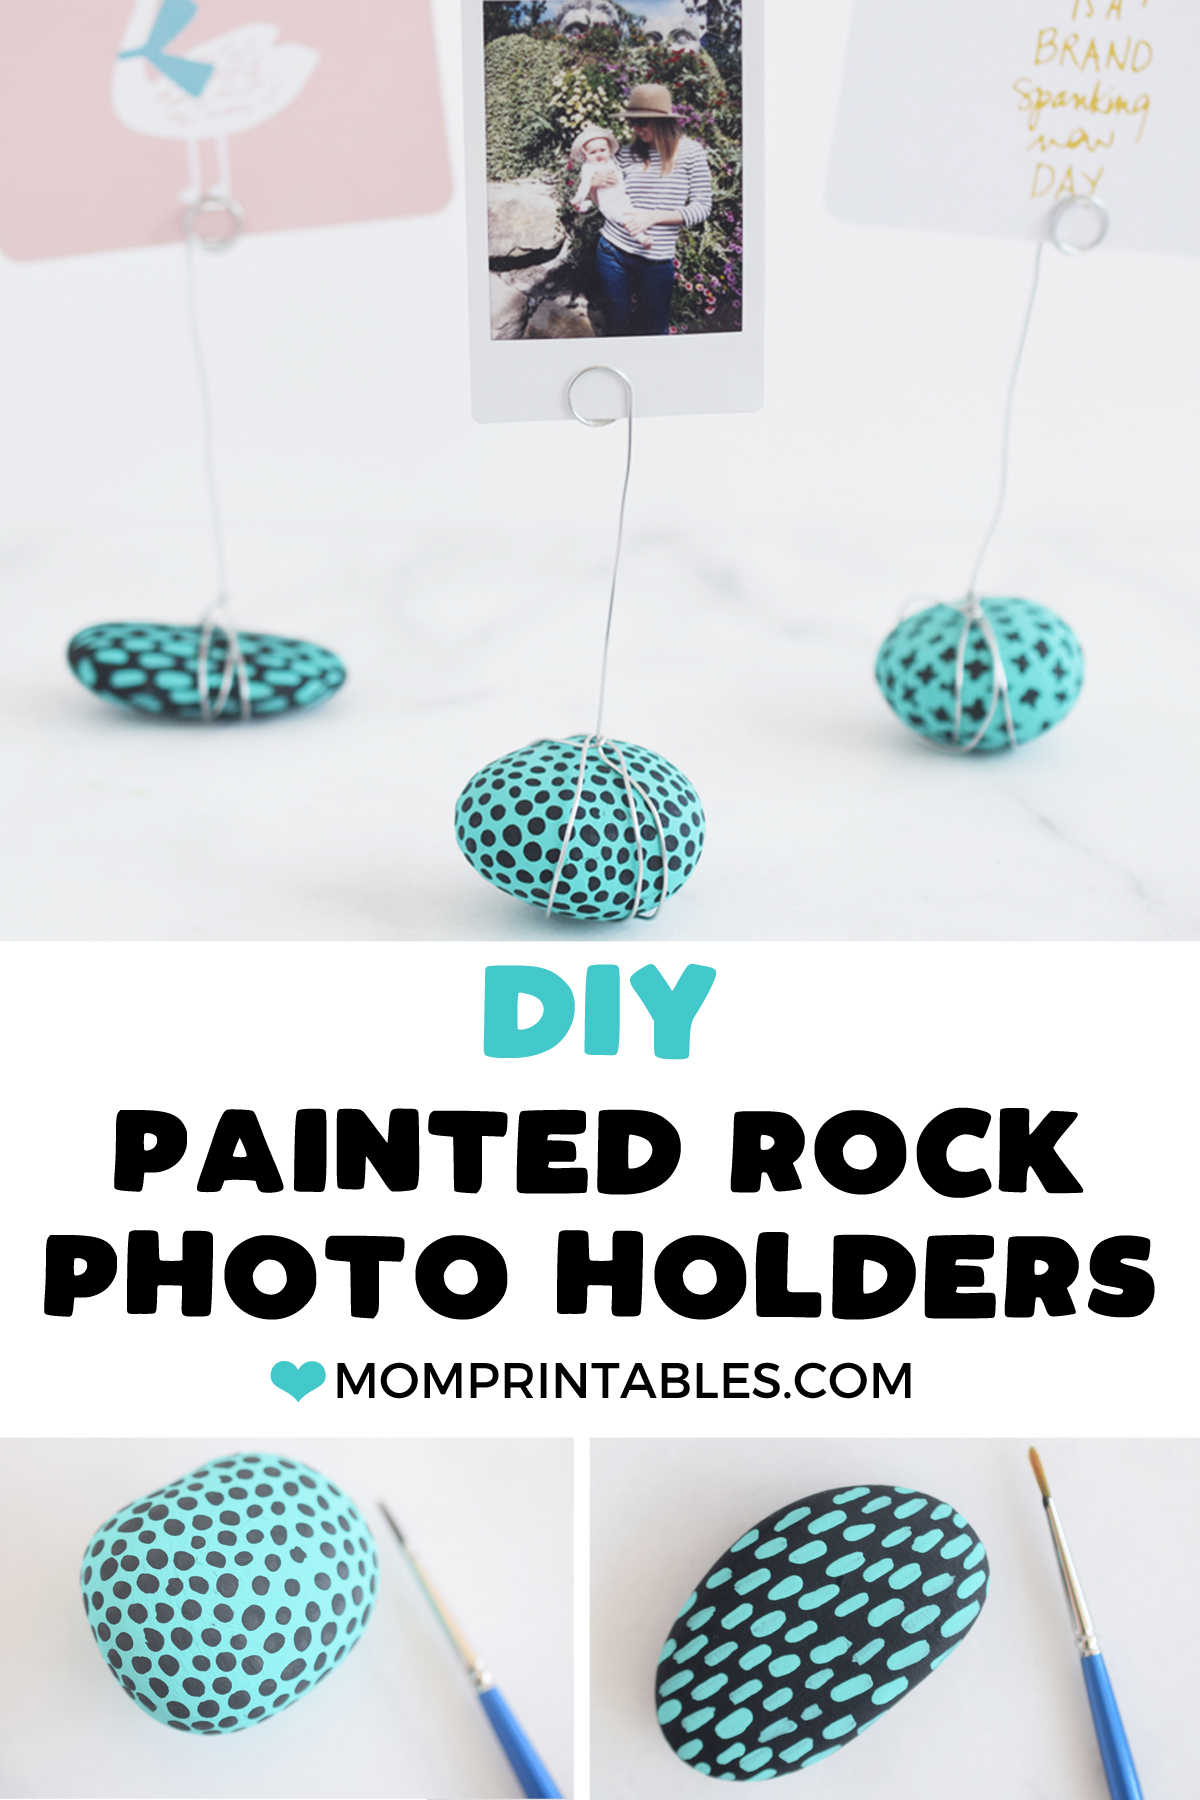 Painted Rock Photo Holders crafts for kids | kids craft | easy crafts for kids | budget friendly crafts | toddler crafts | gifts for mom | gifts for grandparents | gifts from kids | turquoise | painted rocks | photo holder | photo frame craft #kidscrafts #toddlercrafts #crafts #toddleractivities #kidsplayideas